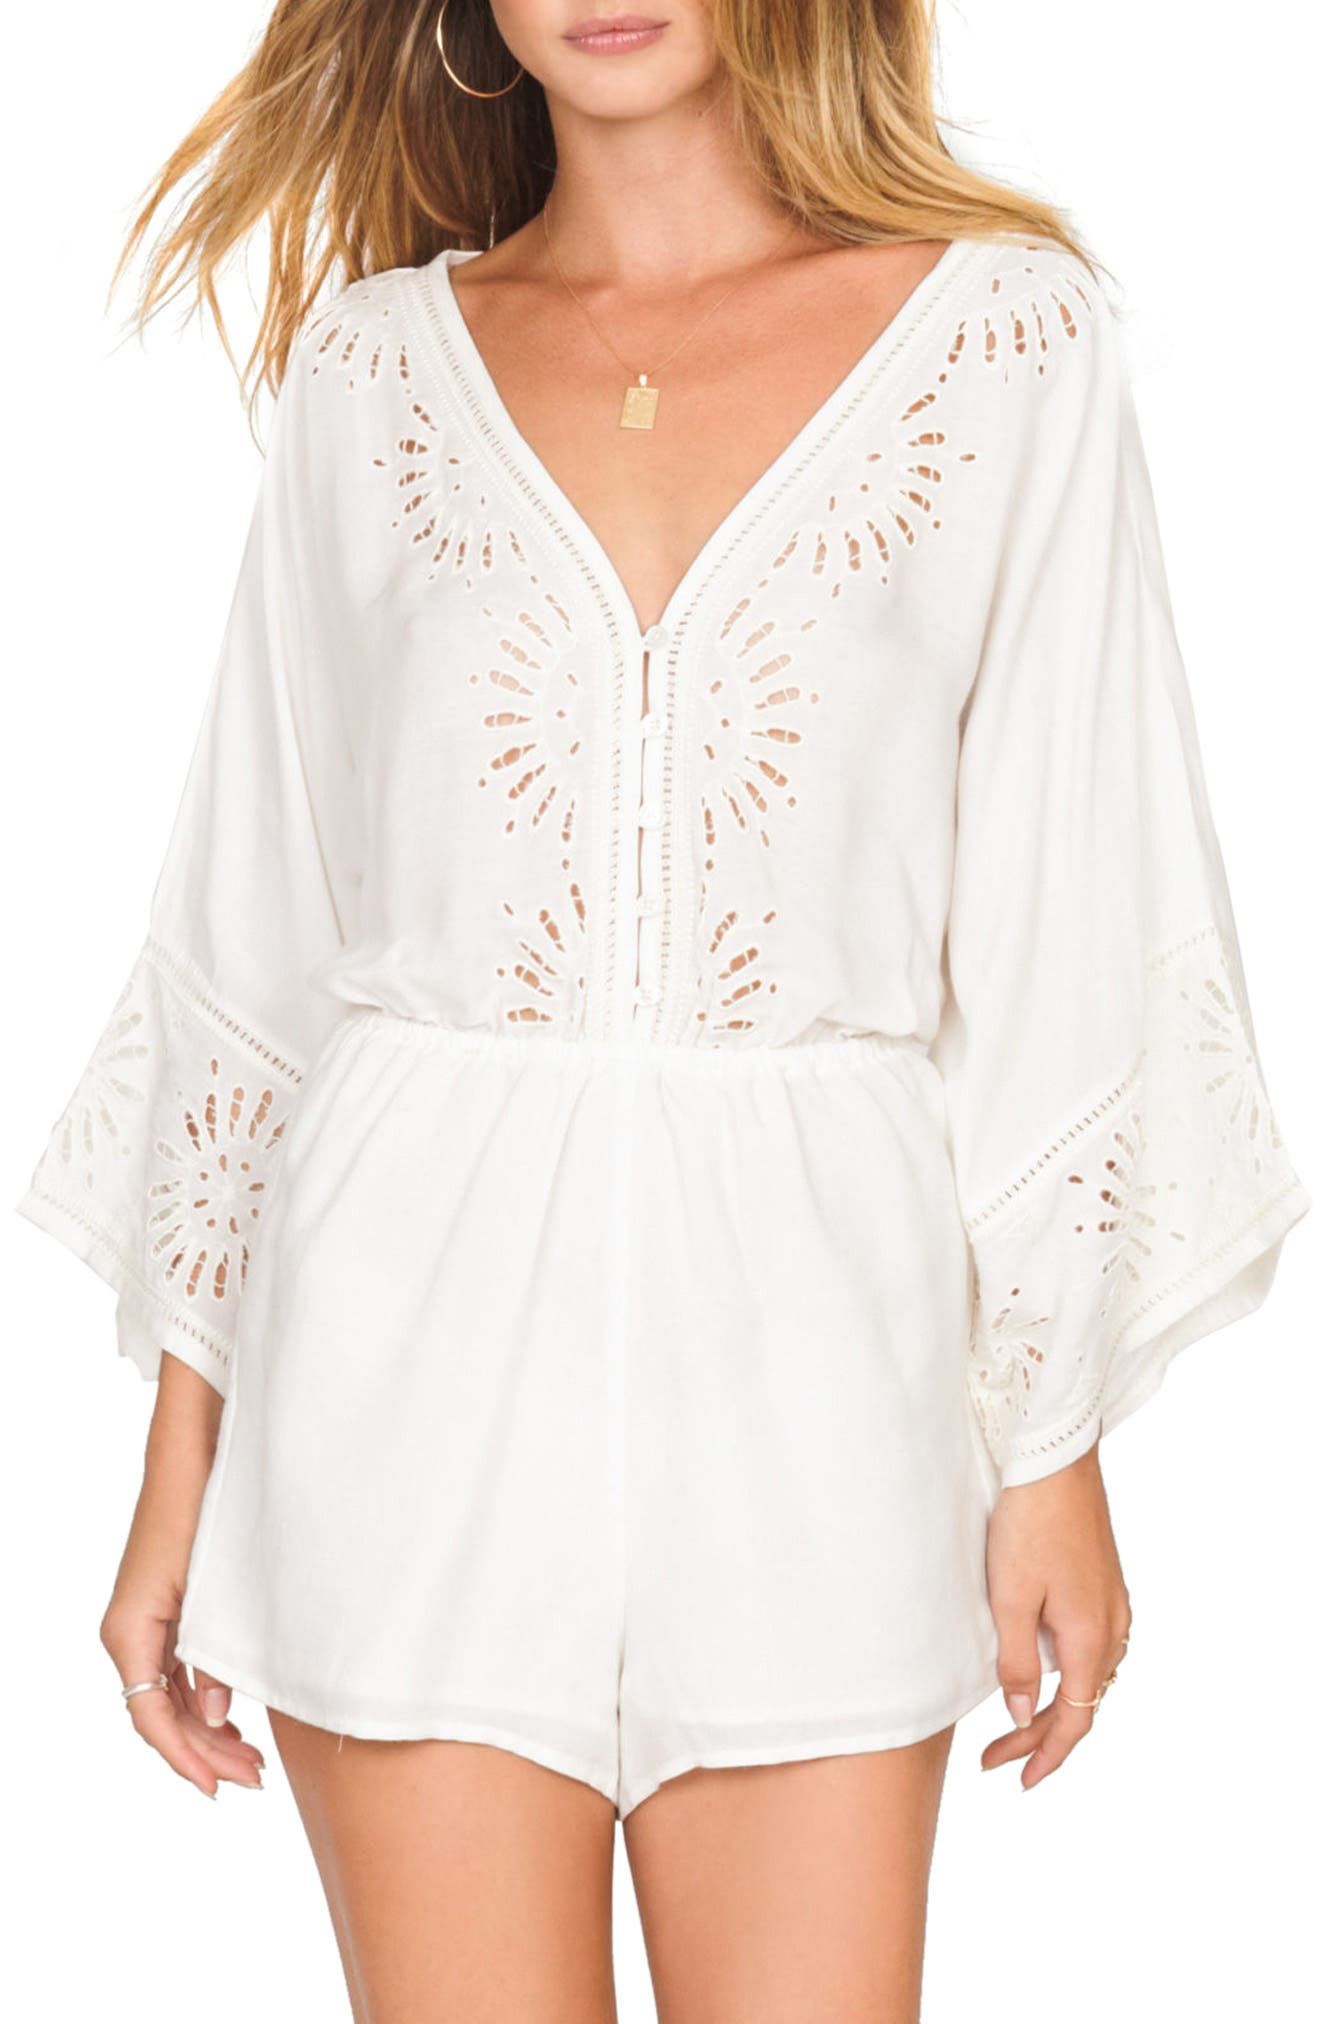 Babe Alert Romper,                         Main,                         color, CASABLANCA